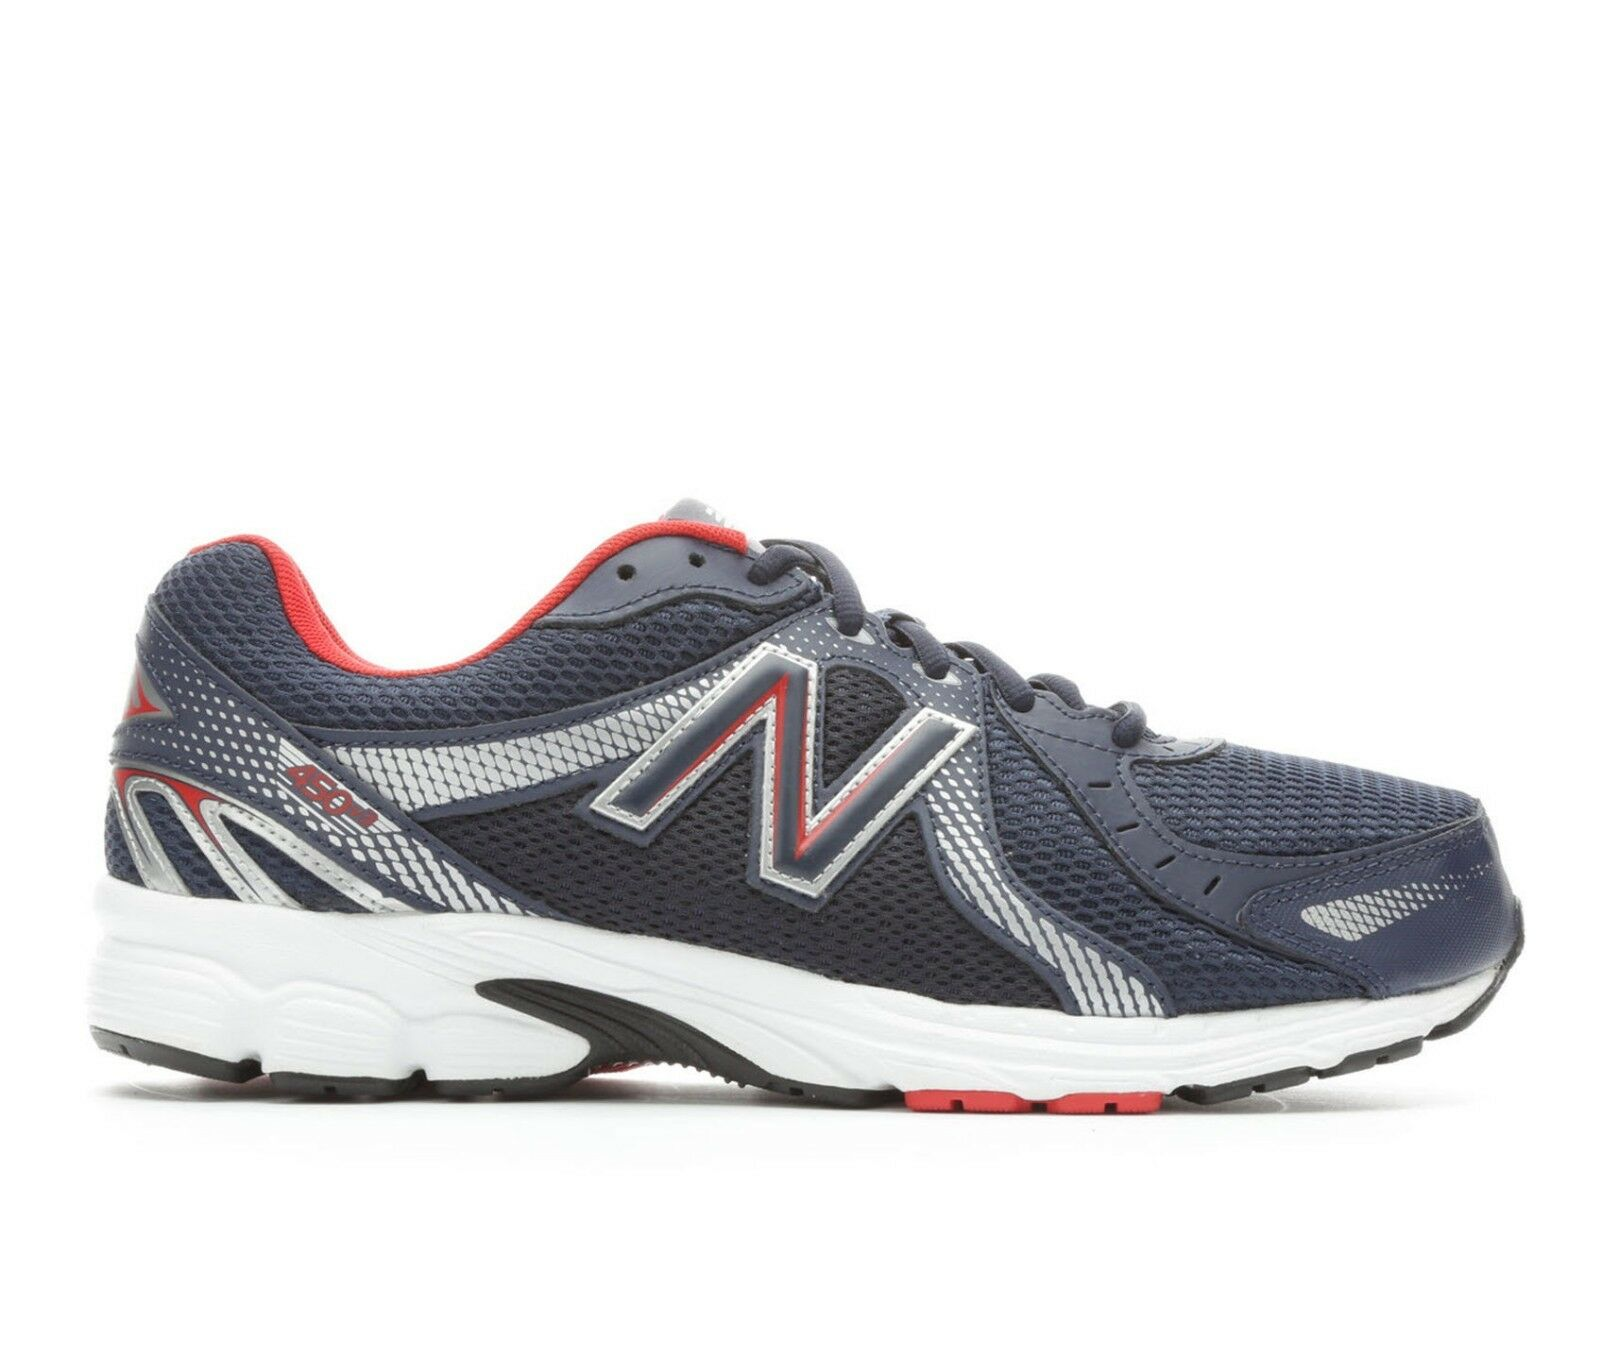 NIB hommes New Balance 450 V3 Running Chaussures Extra Wide 4E Medium Navy rouge